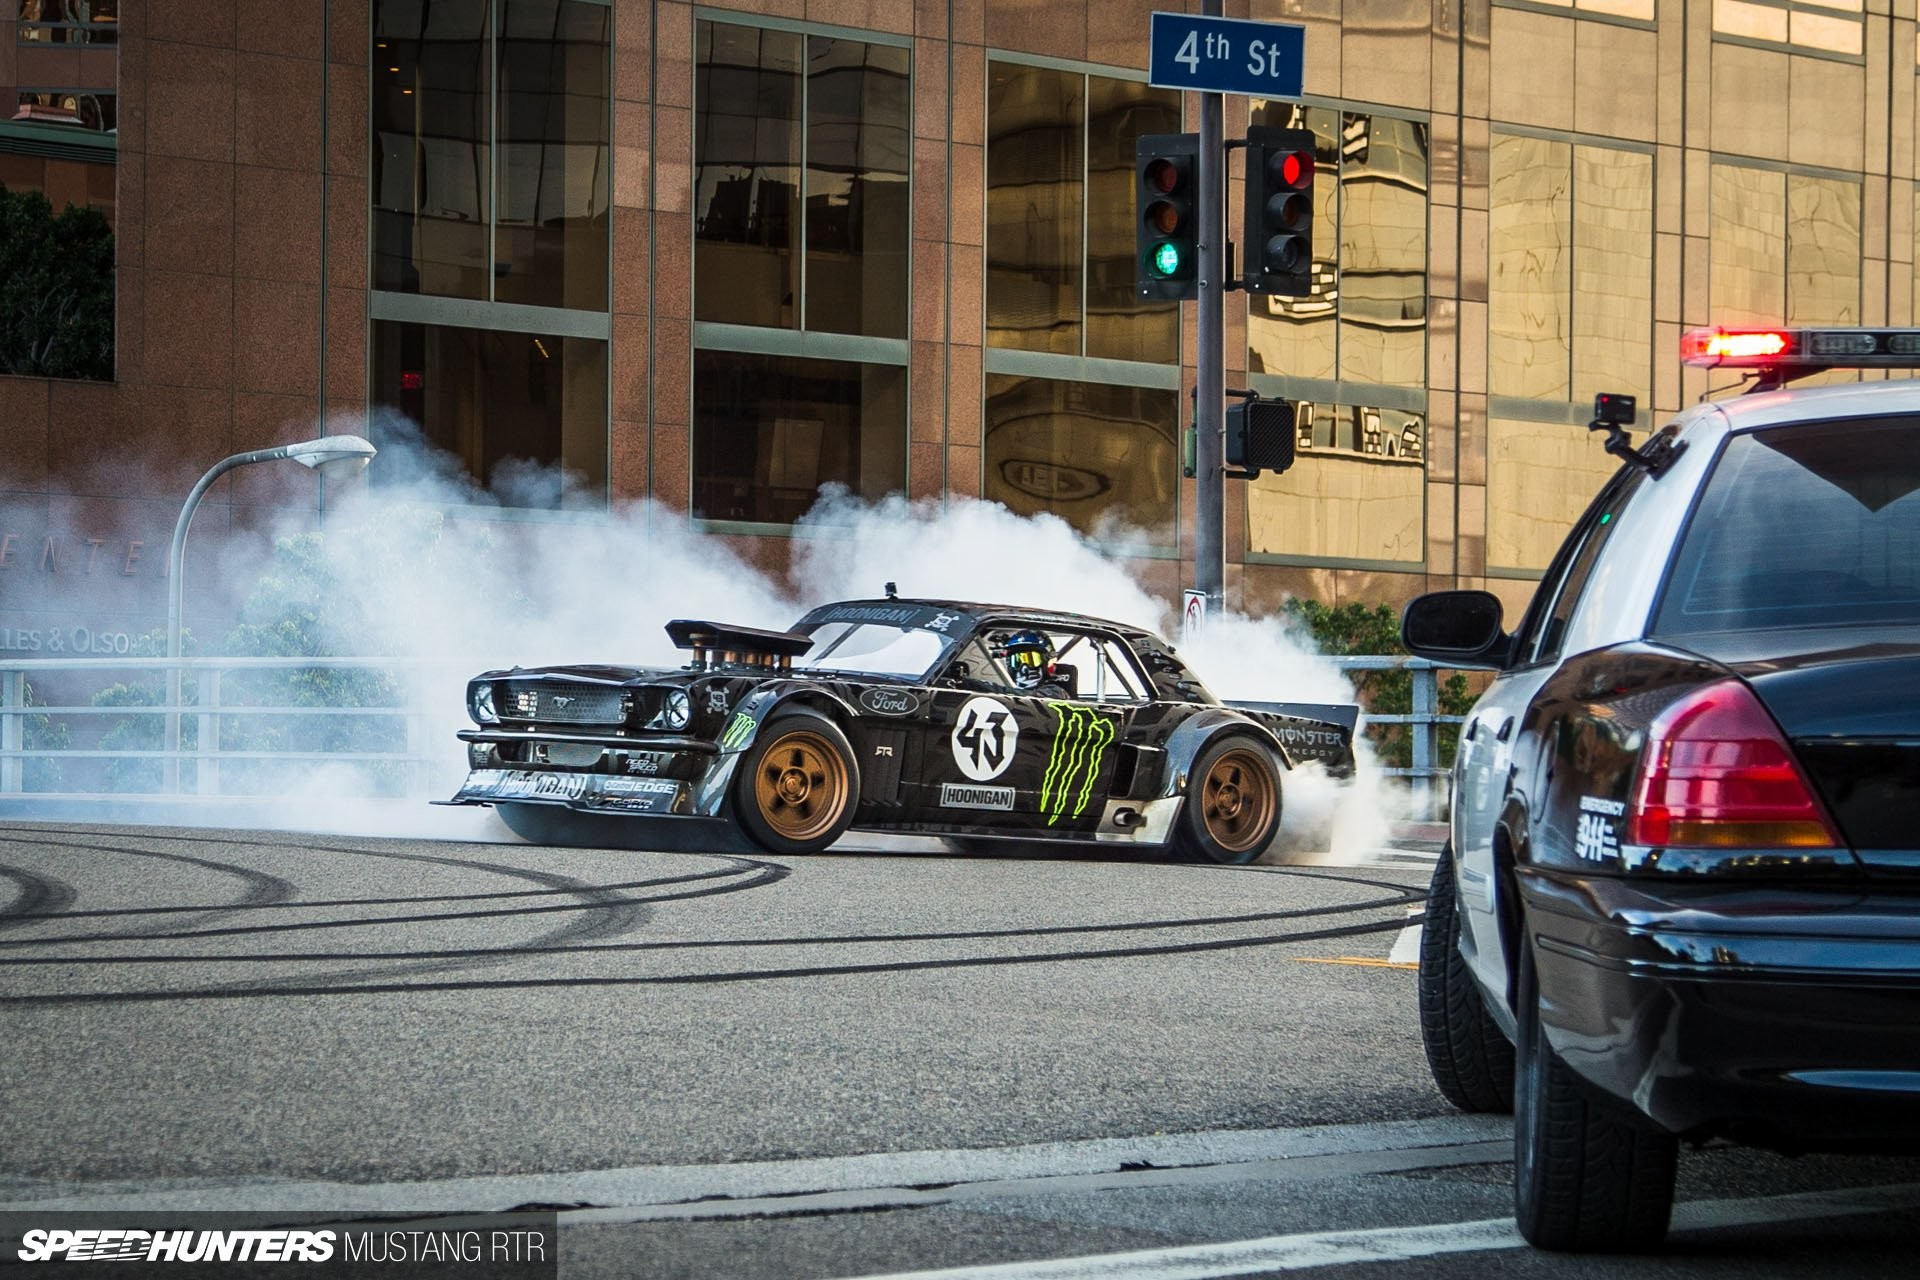 1920x1280 Mustang drift race racing hot rod rods monster wallpaper background .